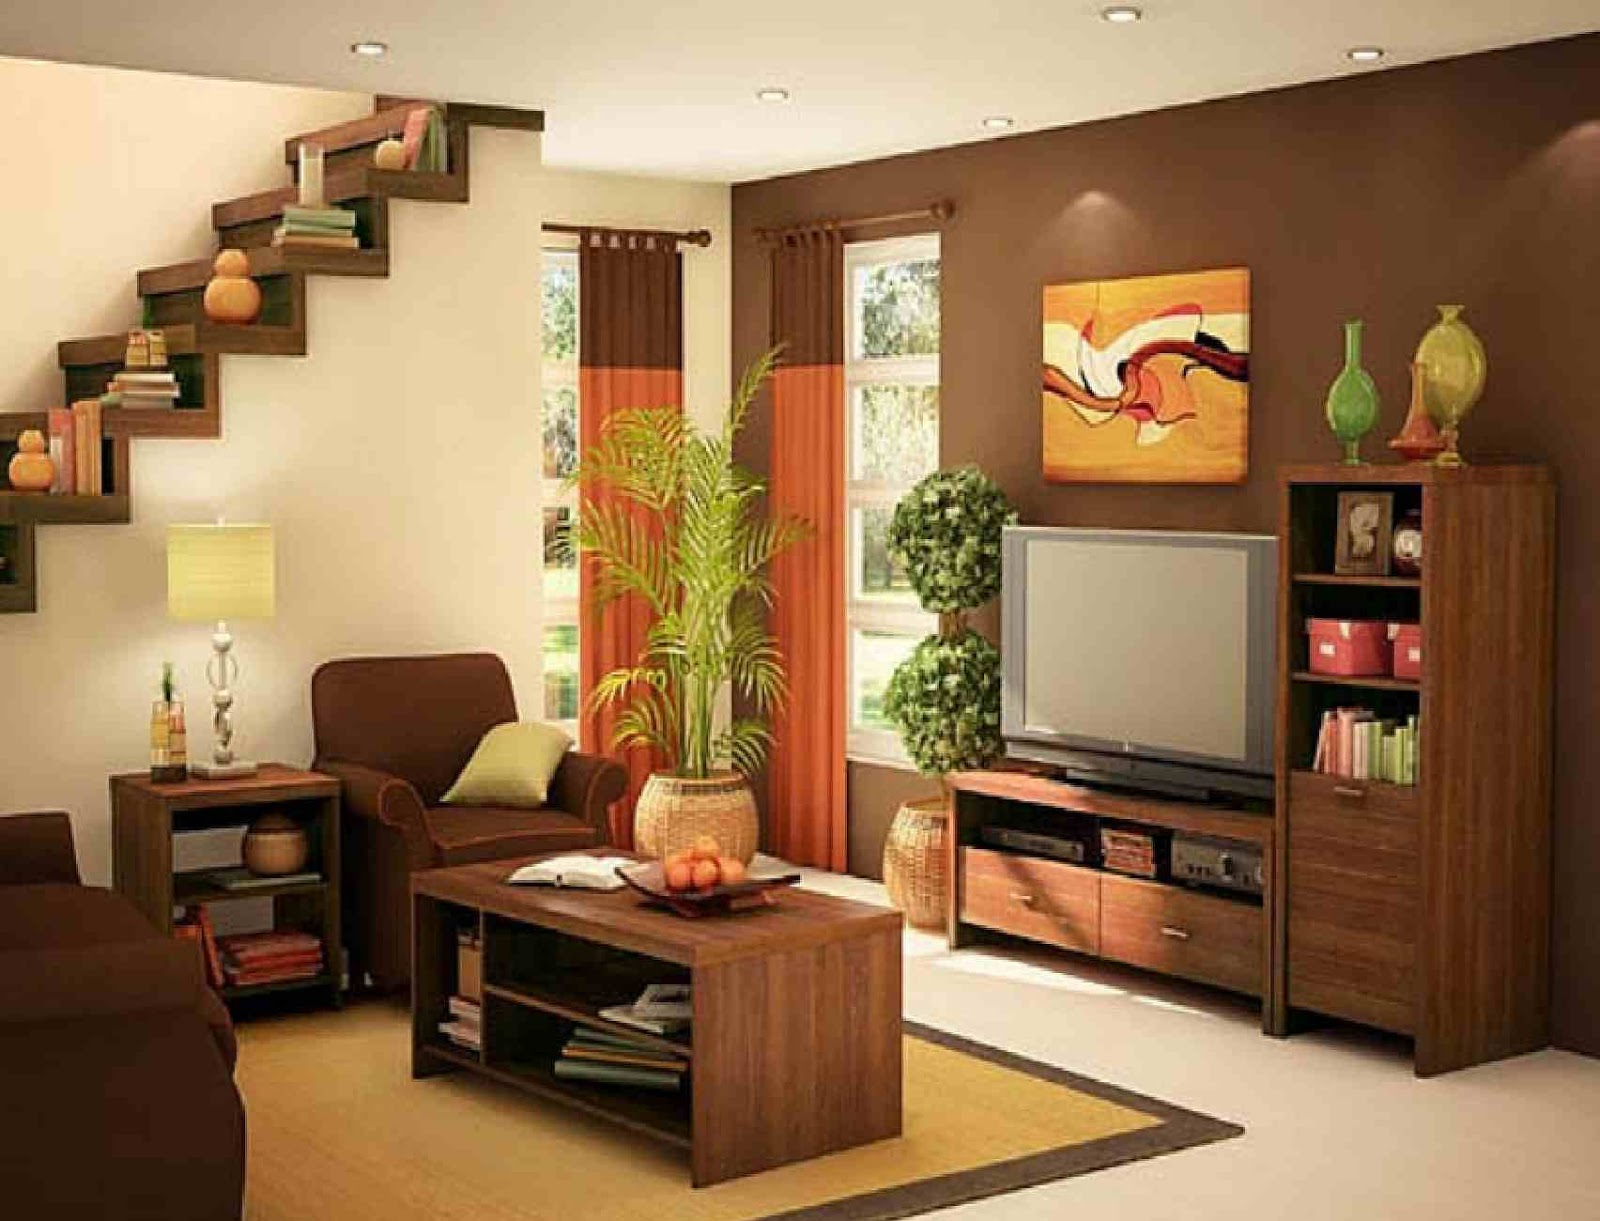 Home interior designs simple living room designs for Simple living room ideas